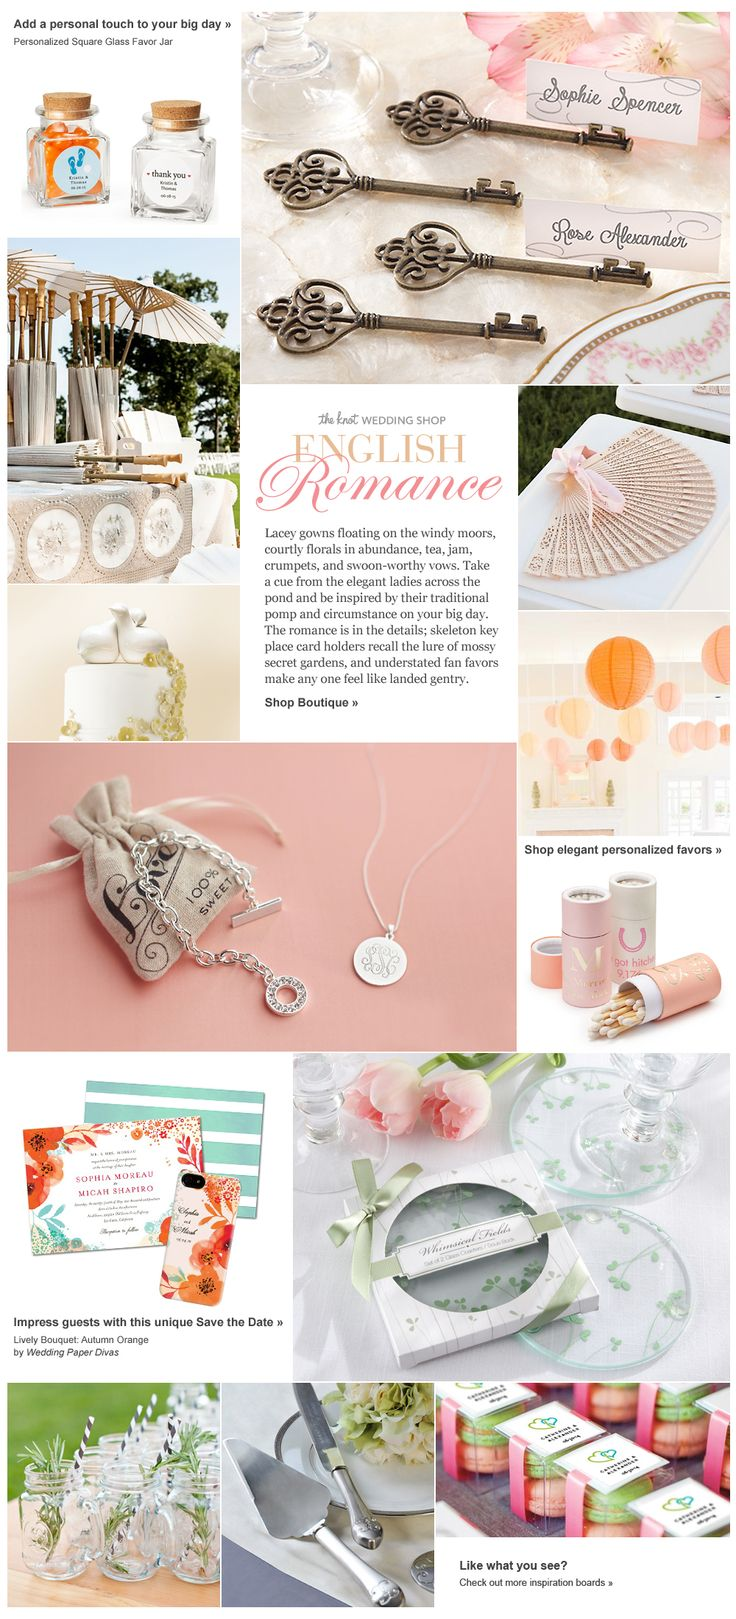 best inspiration boards images on pinterest bridal photography